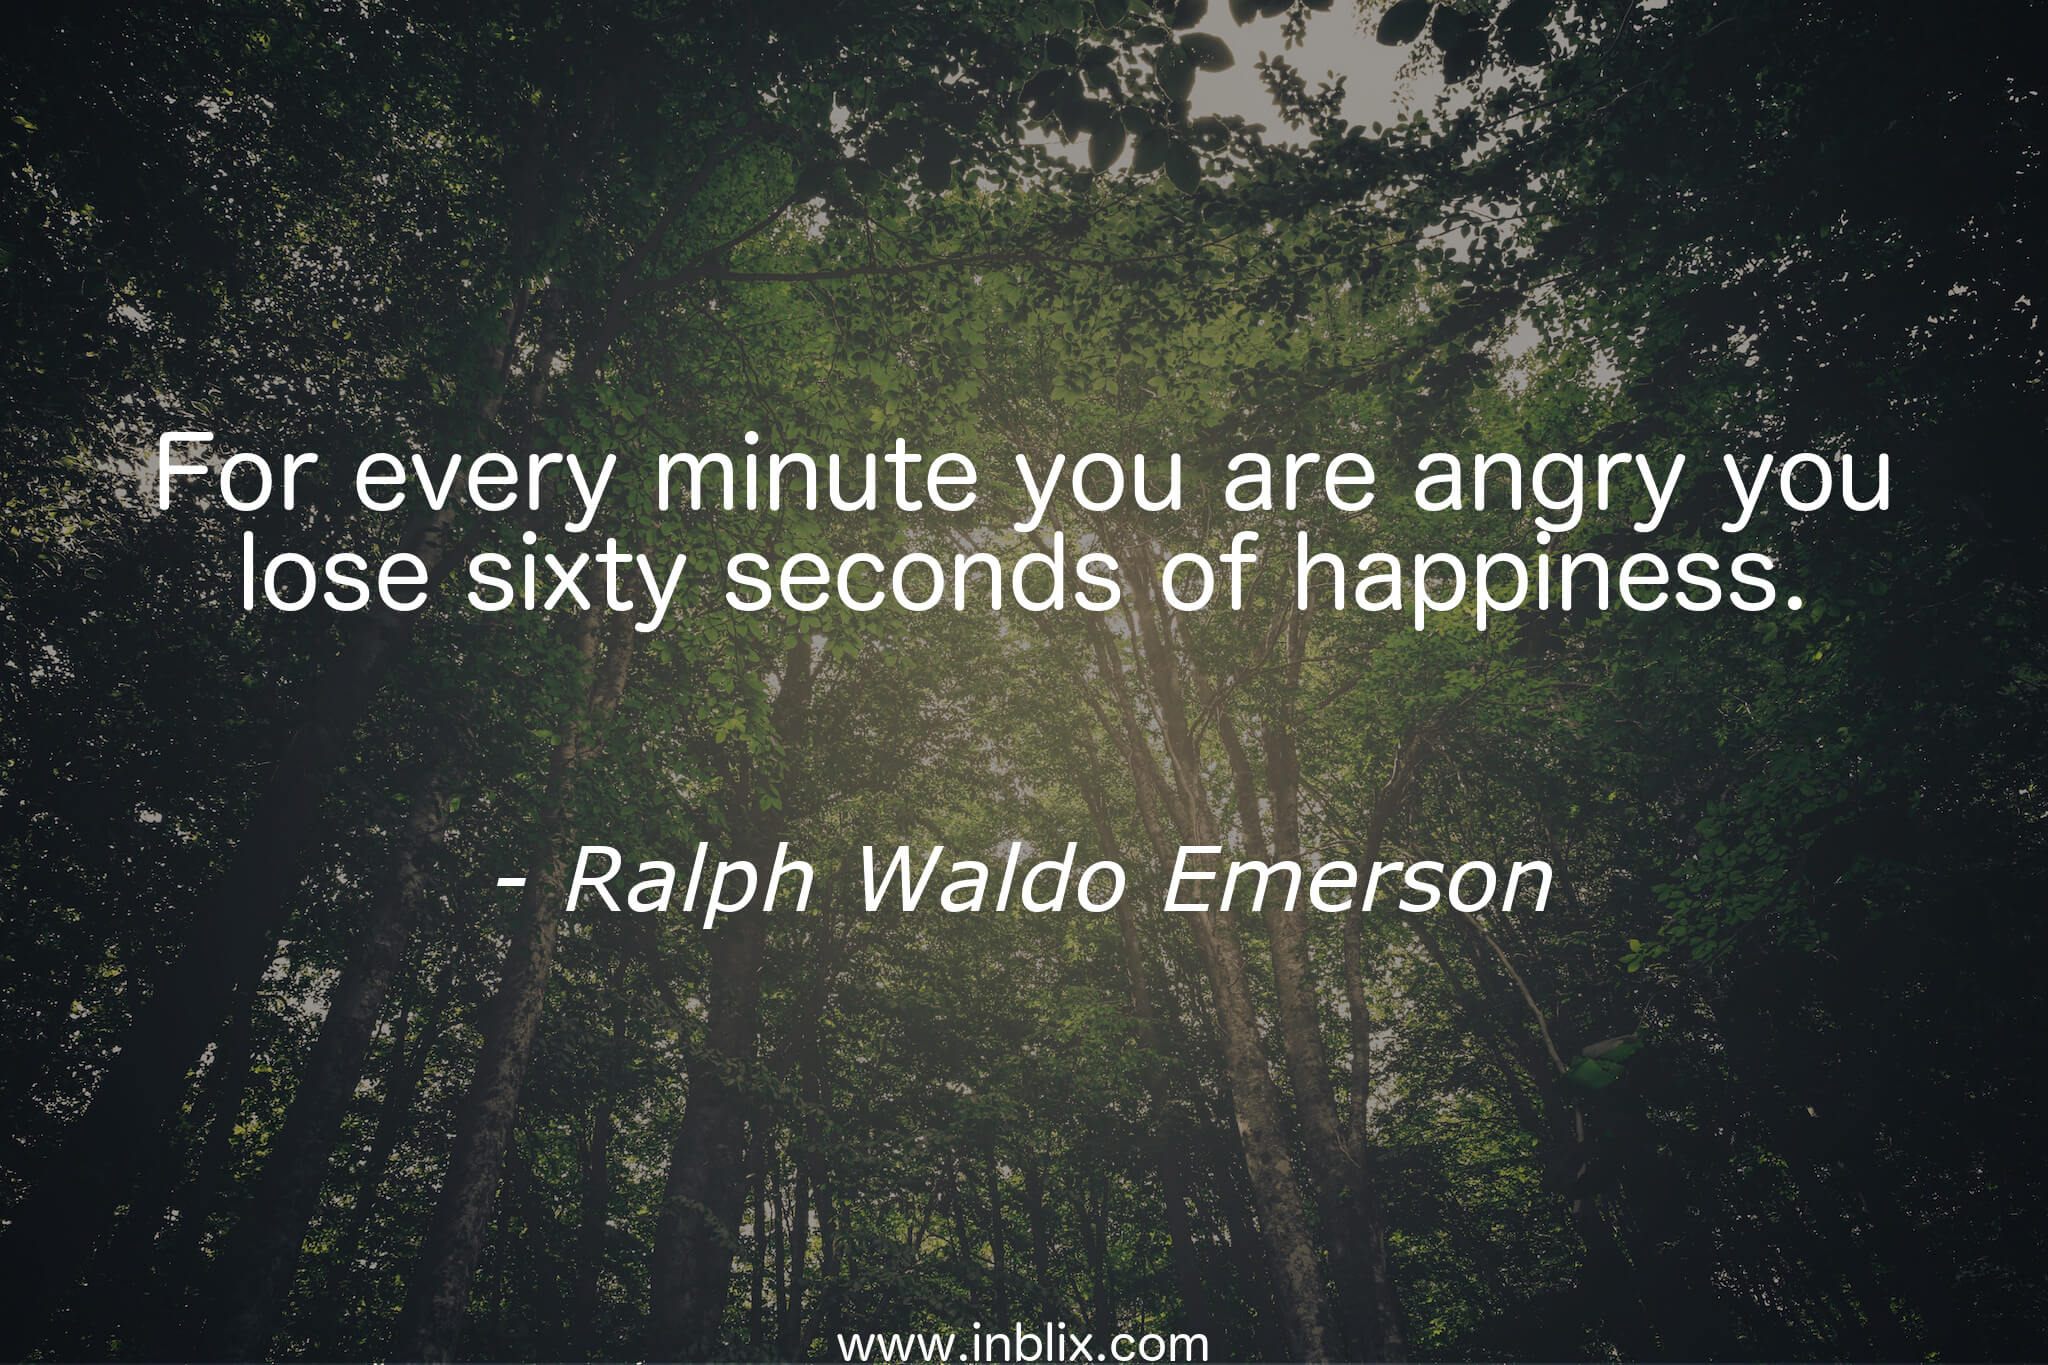 For Every Minute You Are Angry By Ralph Waldo Emerson